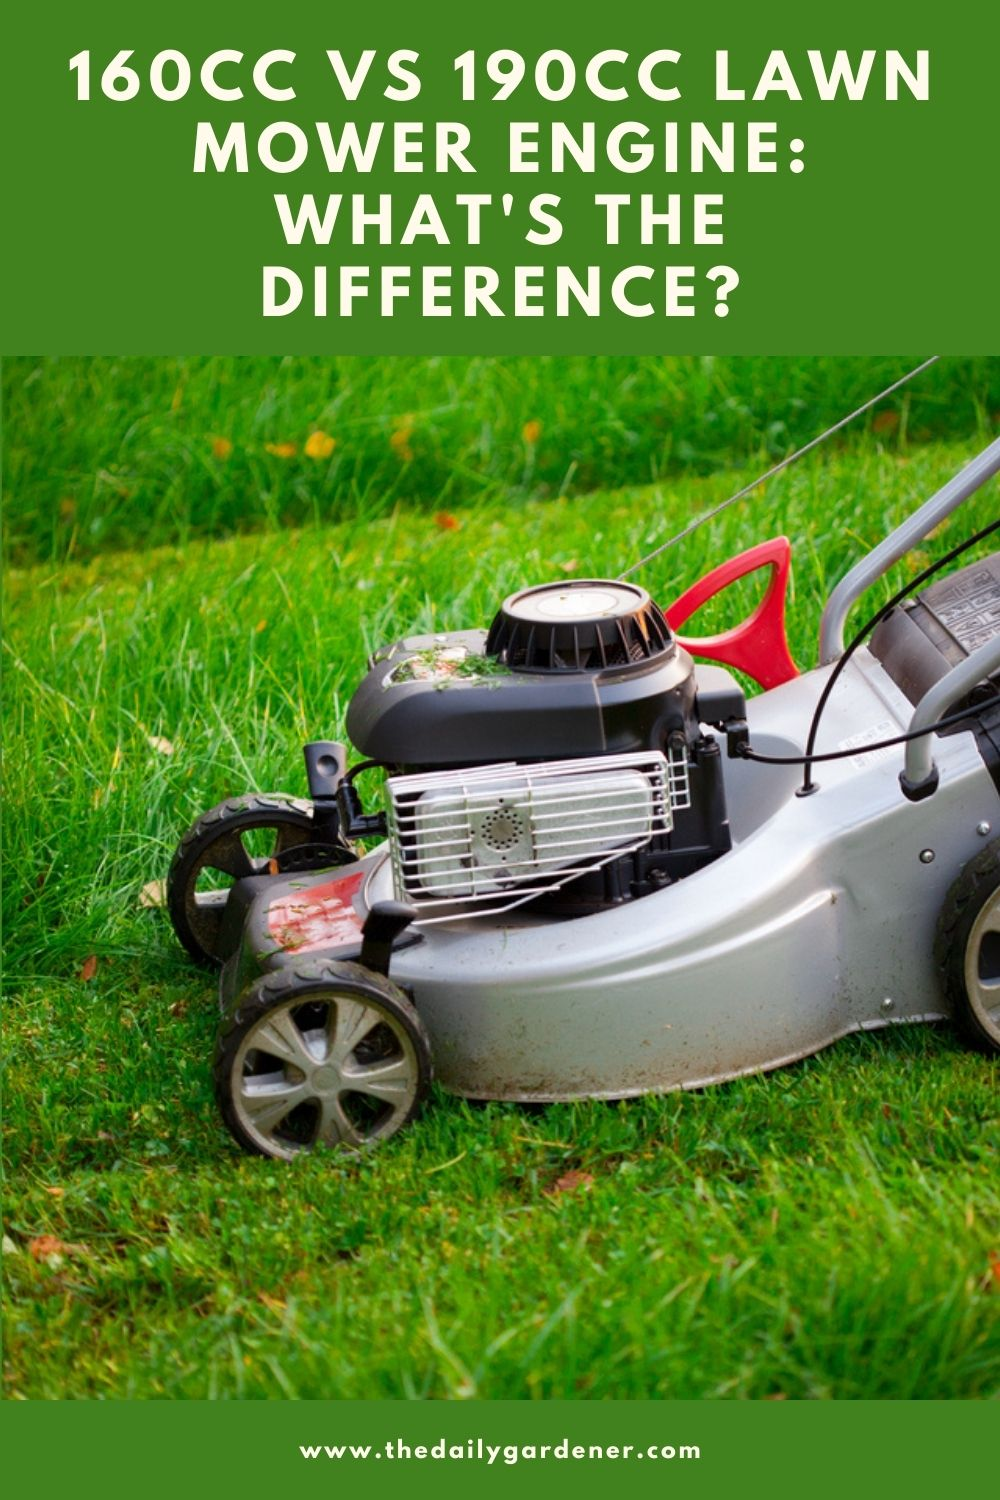 160cc vs 190cc Lawn Mower Engine What's the Difference 2